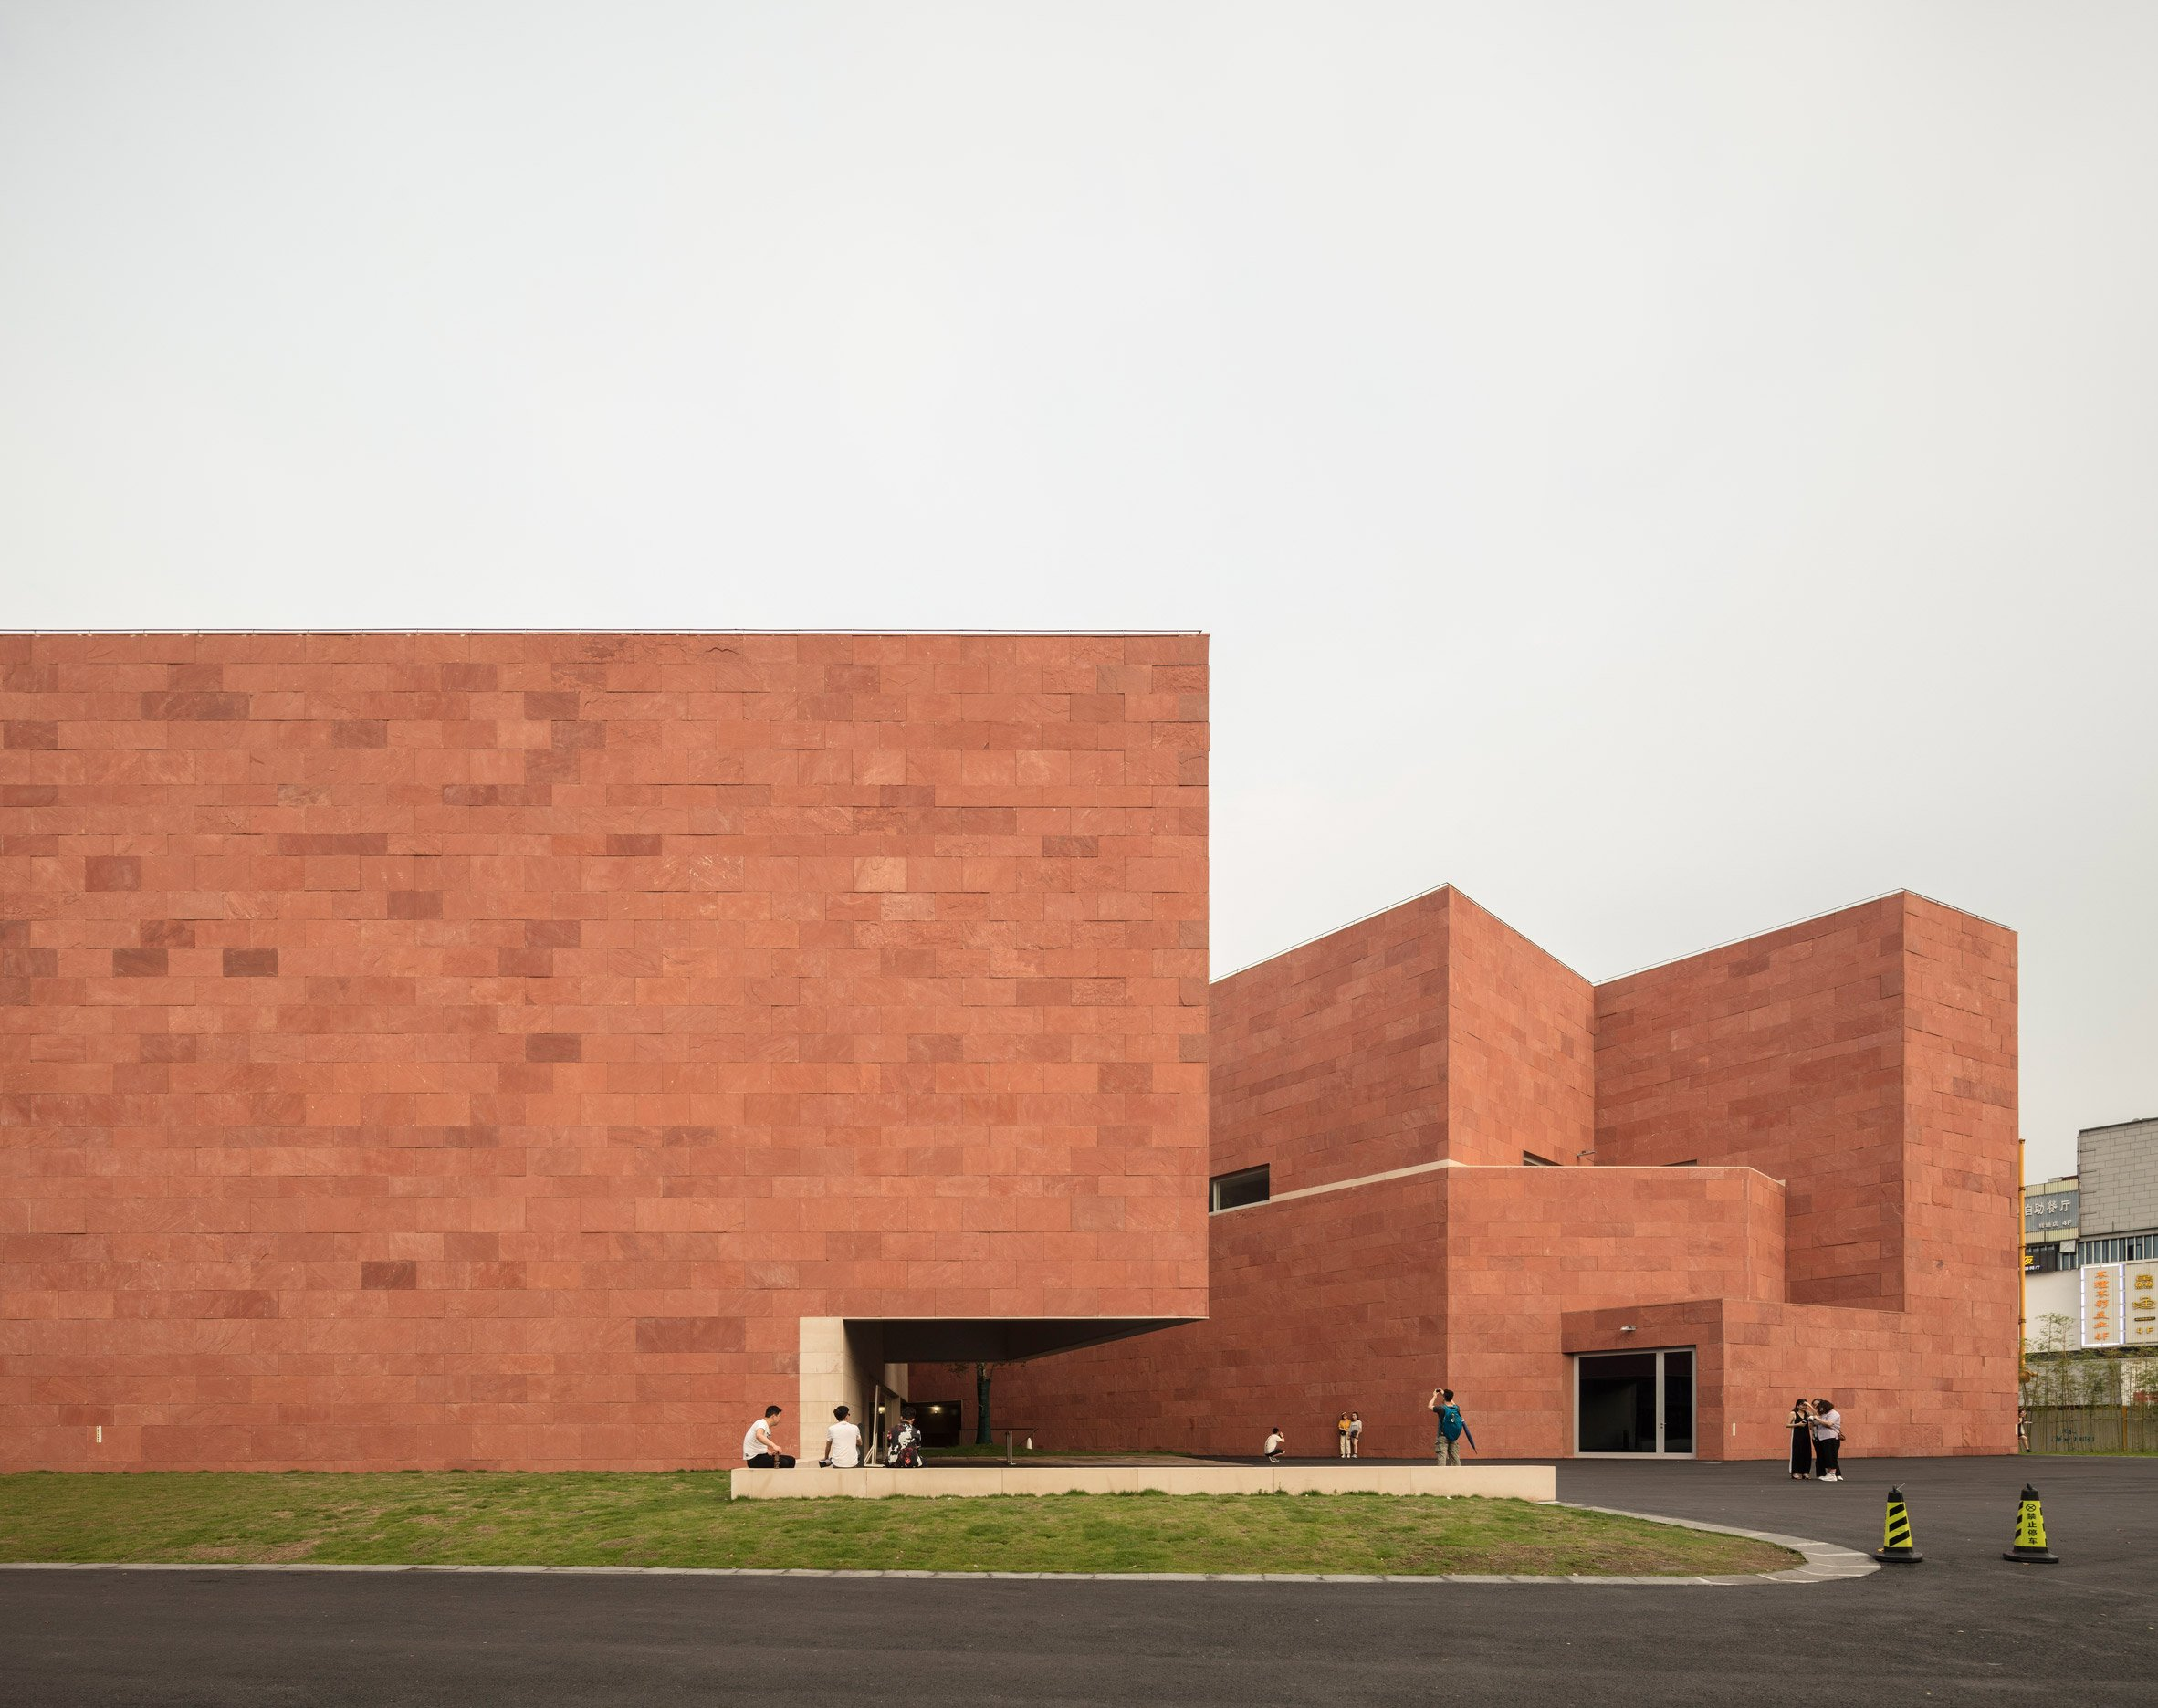 Álvaro Siza clads International Design Museum of China in red sandstone